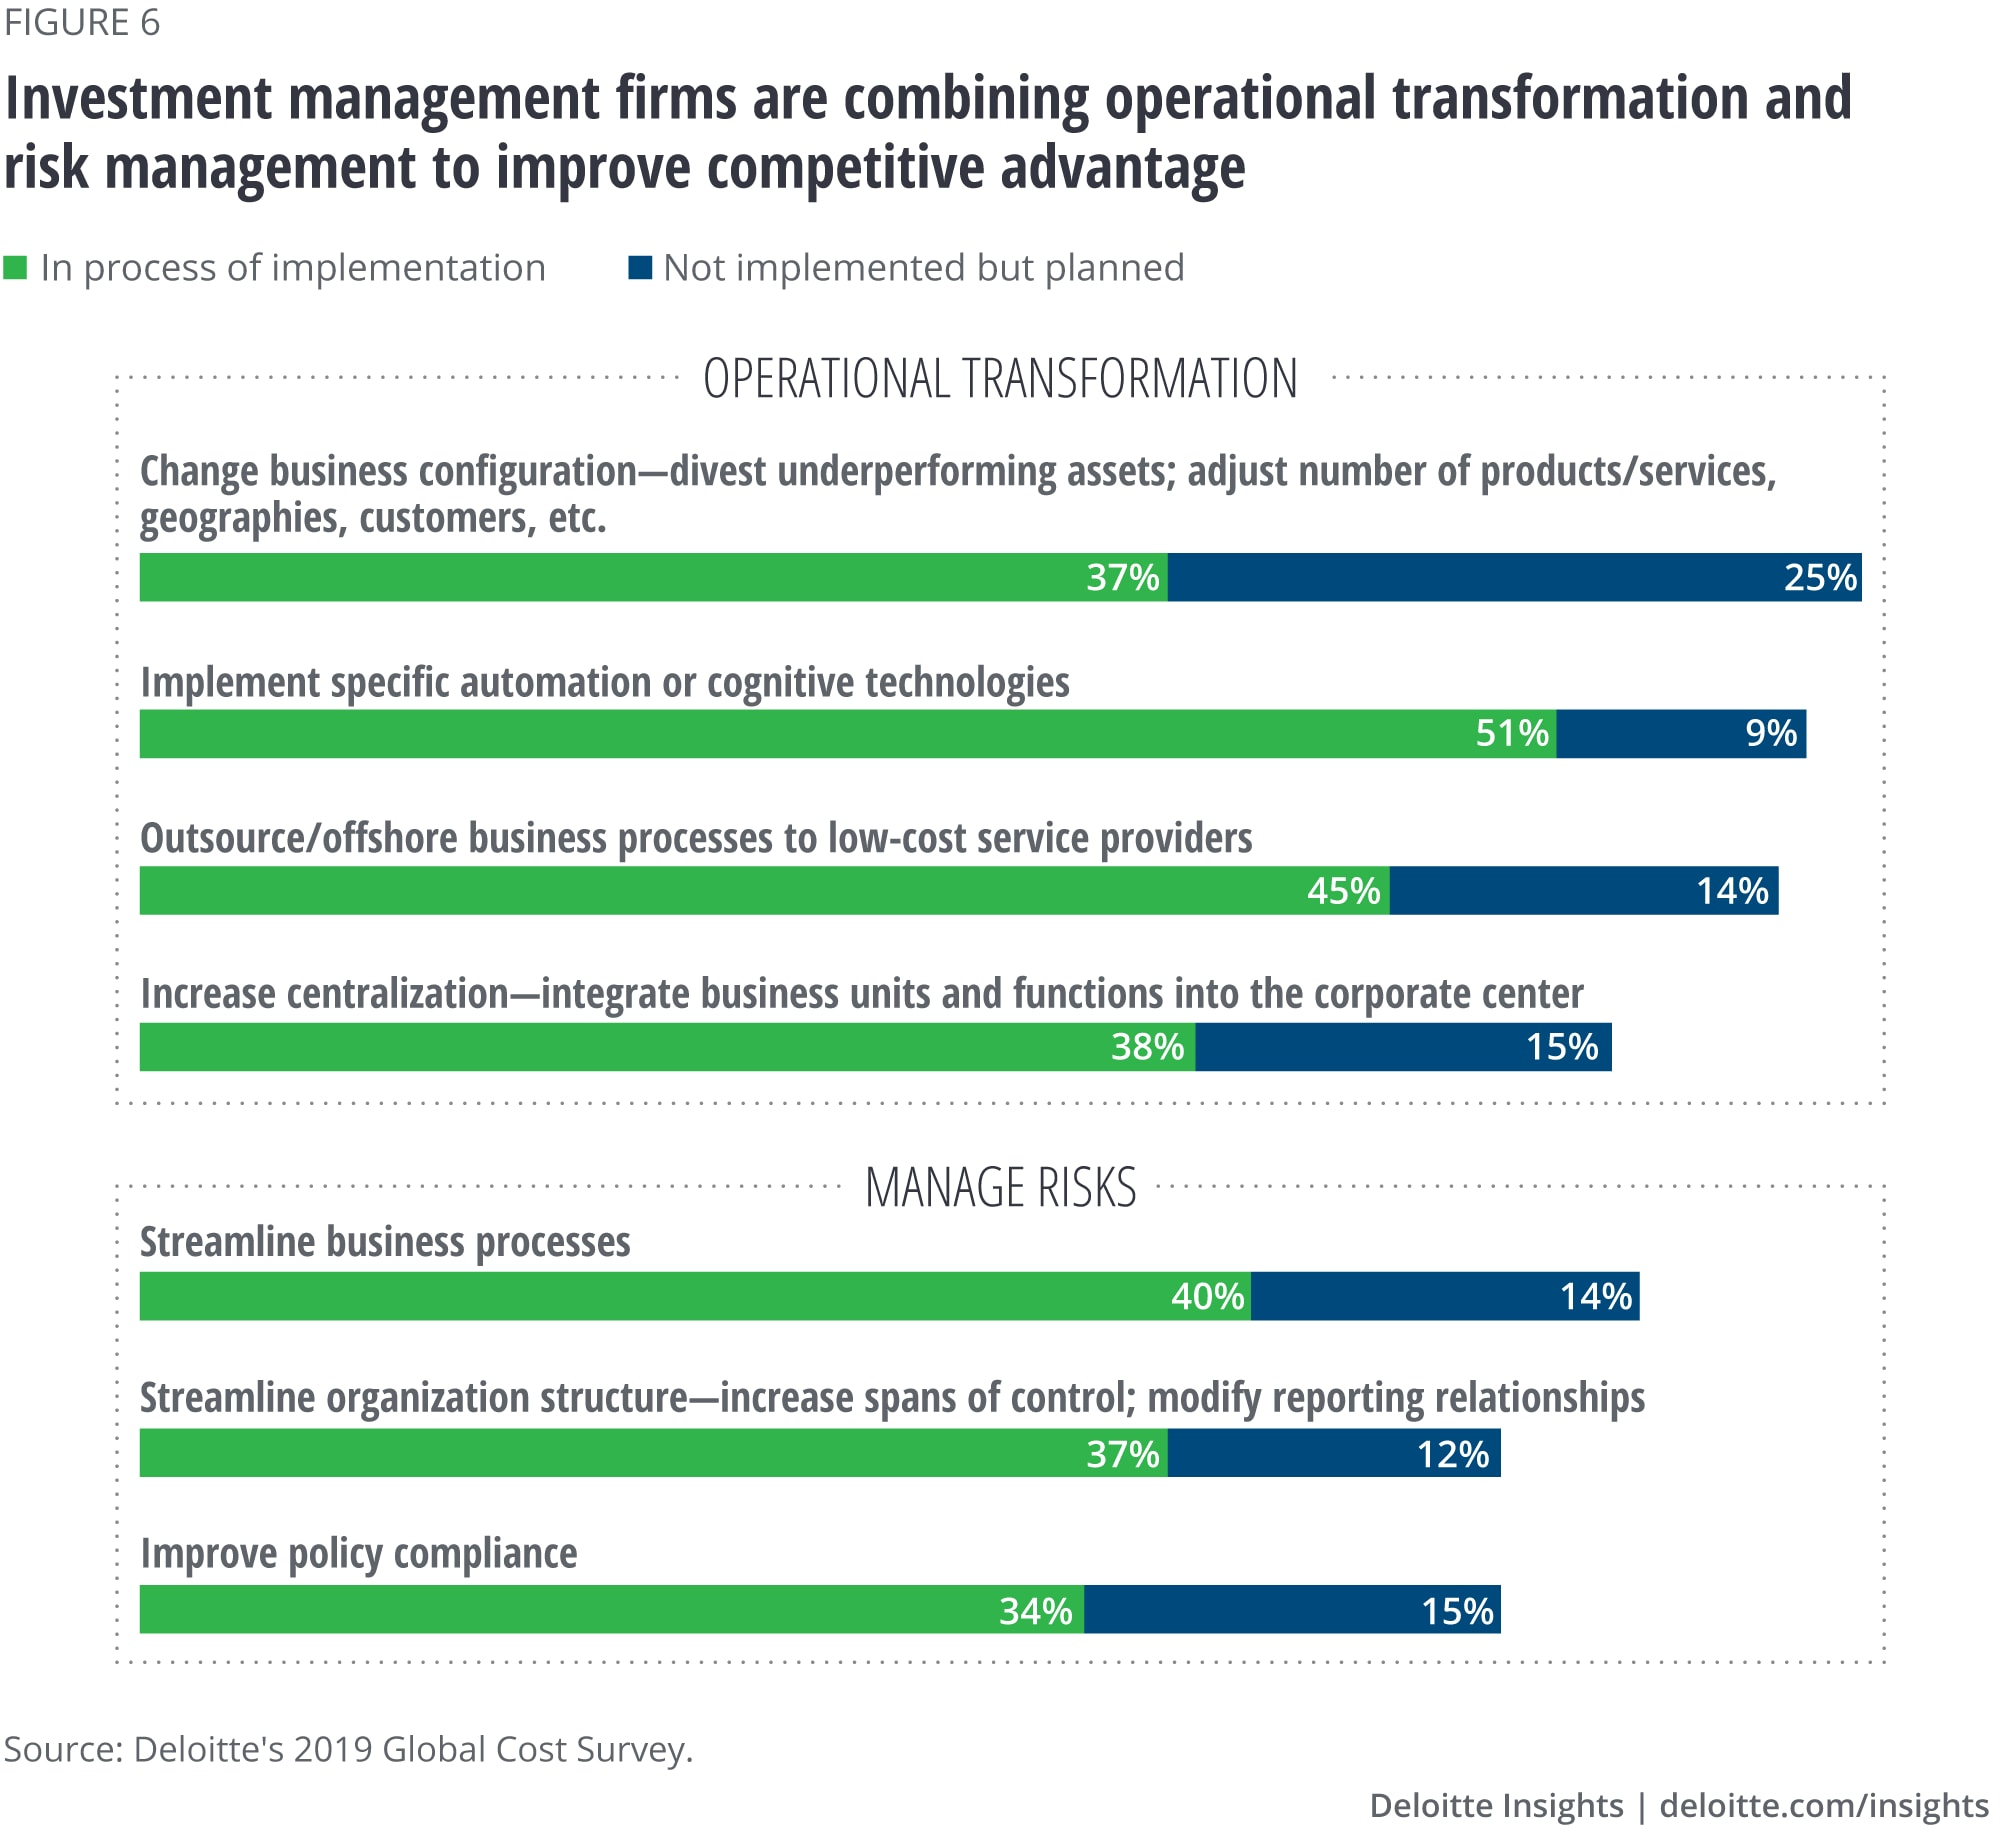 Investment management firms are combining operational transformation and risk management to improve competitive advantage